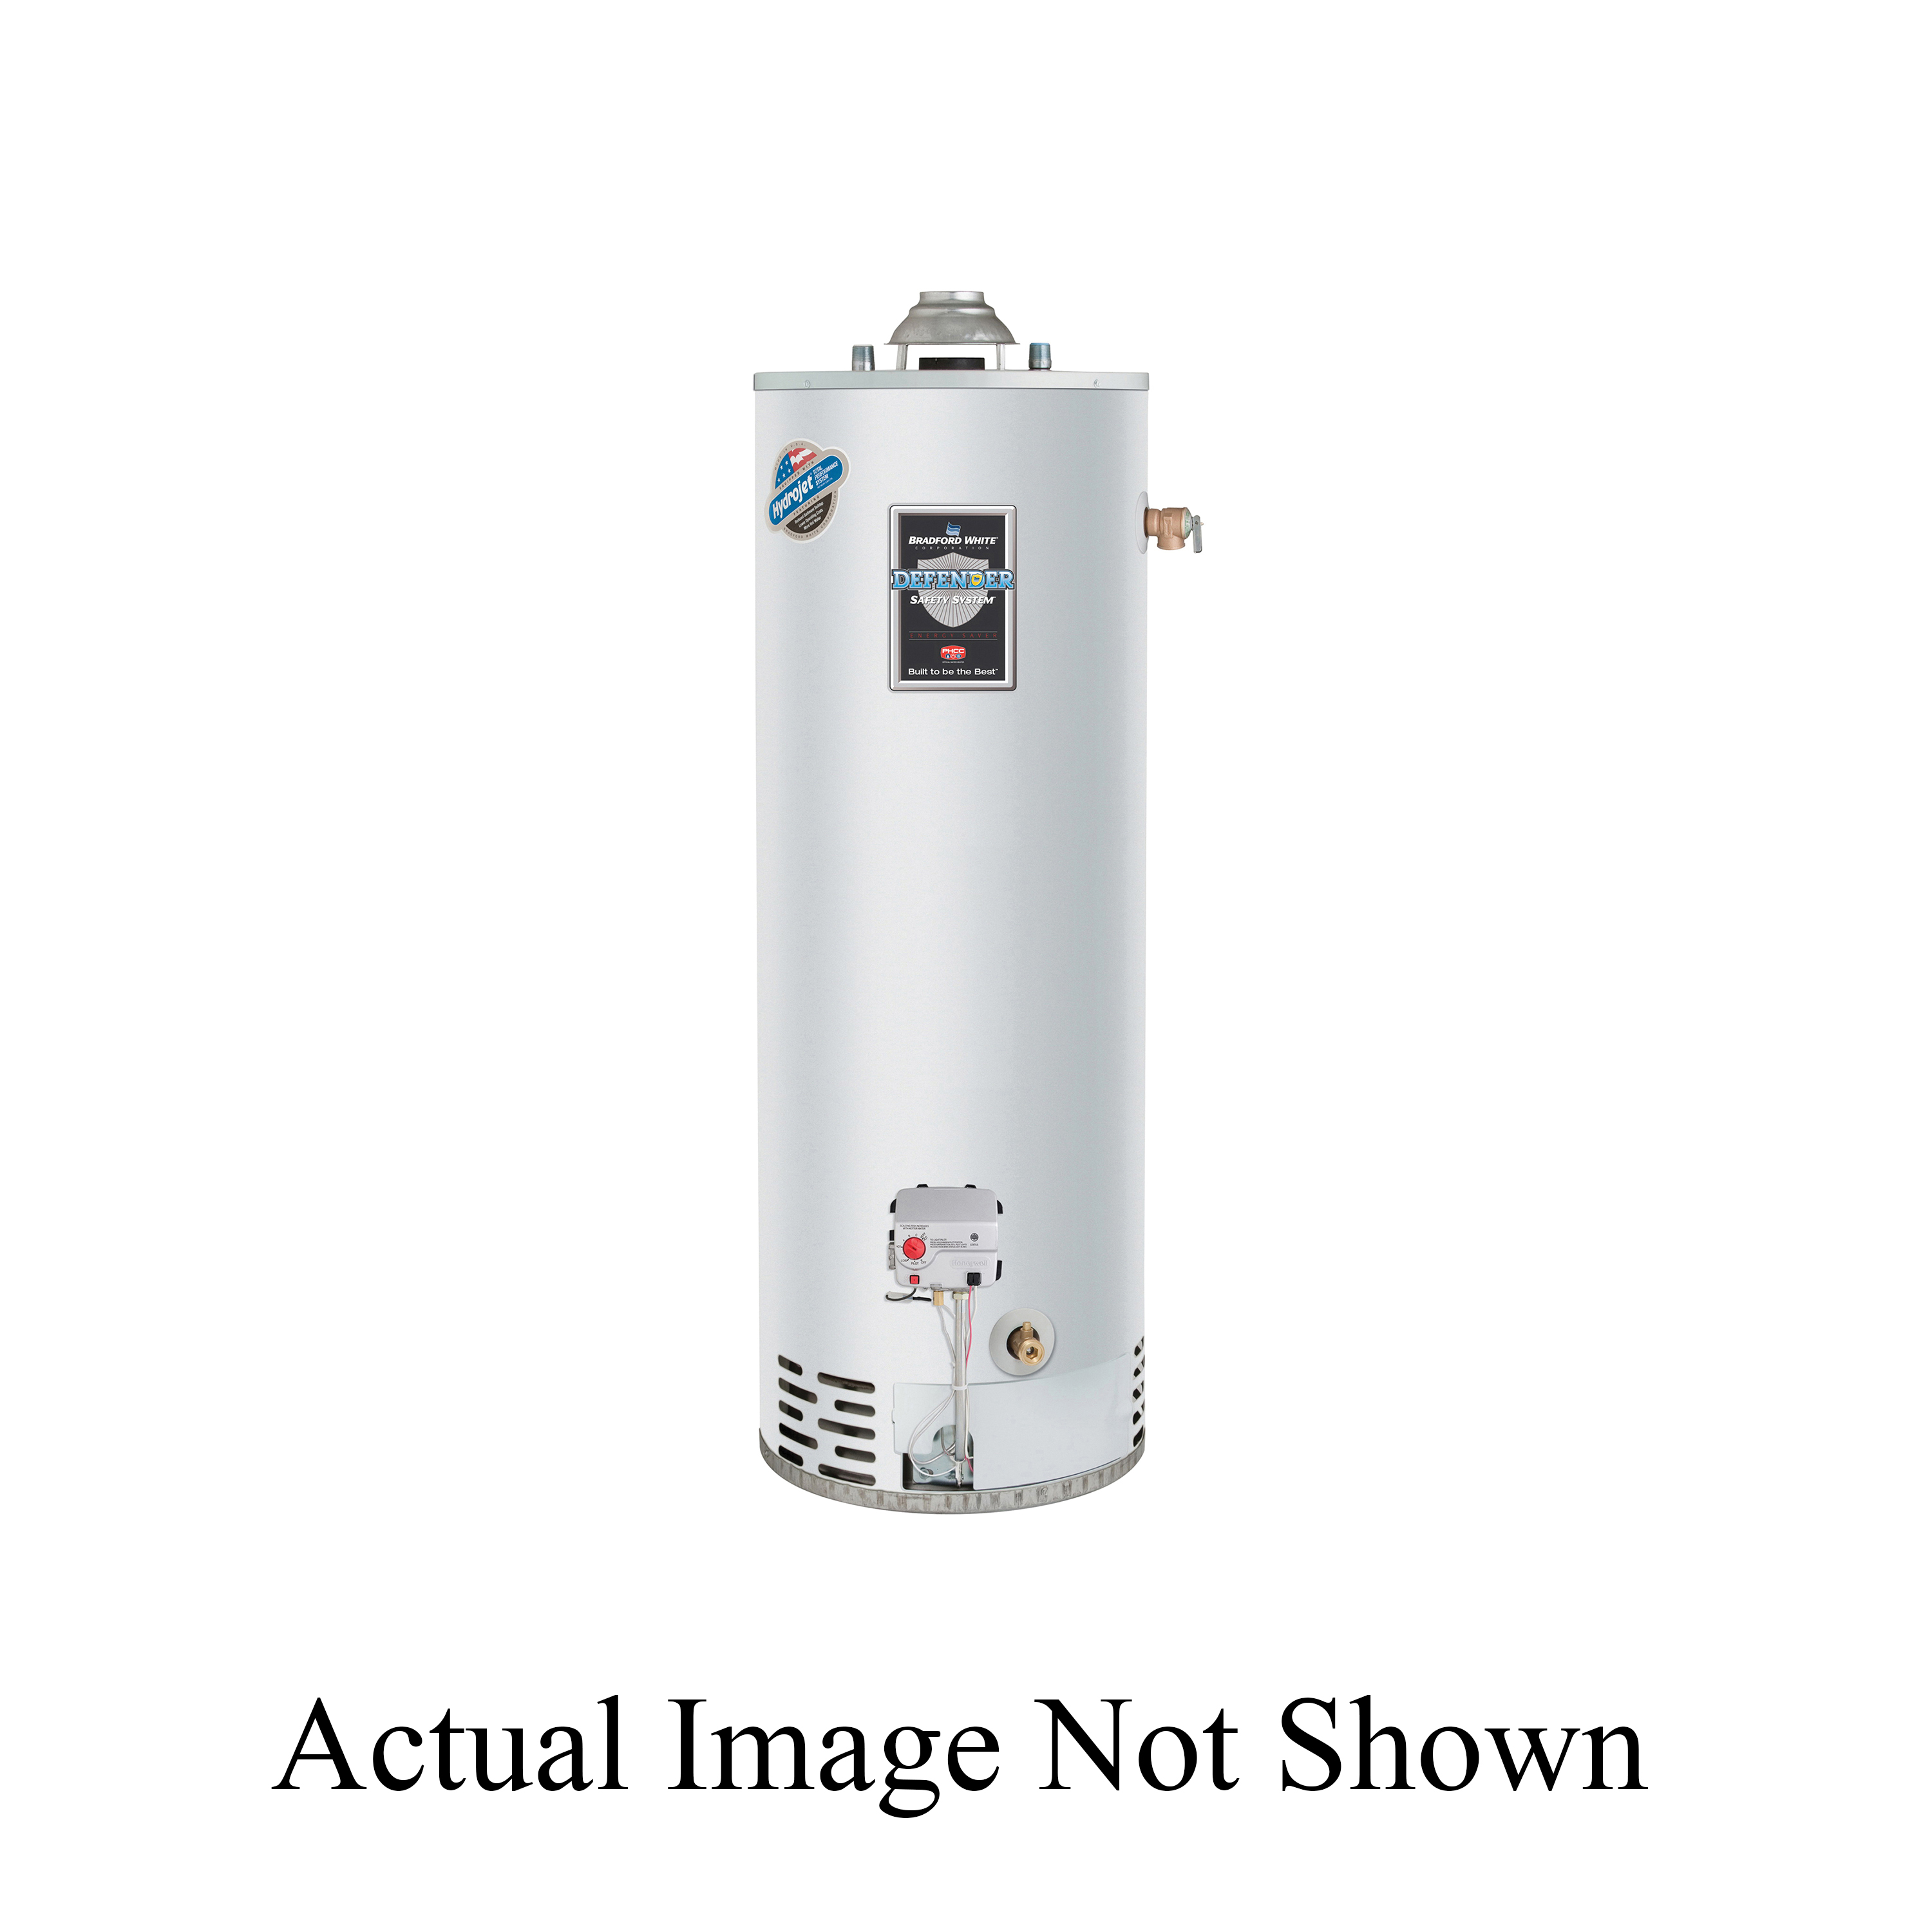 Bradford White Defender Safety System RG140T6N-394-500 Gas Water Heater, 34000 Btu/hr Heating, 40 gal Tank, Natural Gas Fuel, Atmospheric Vent